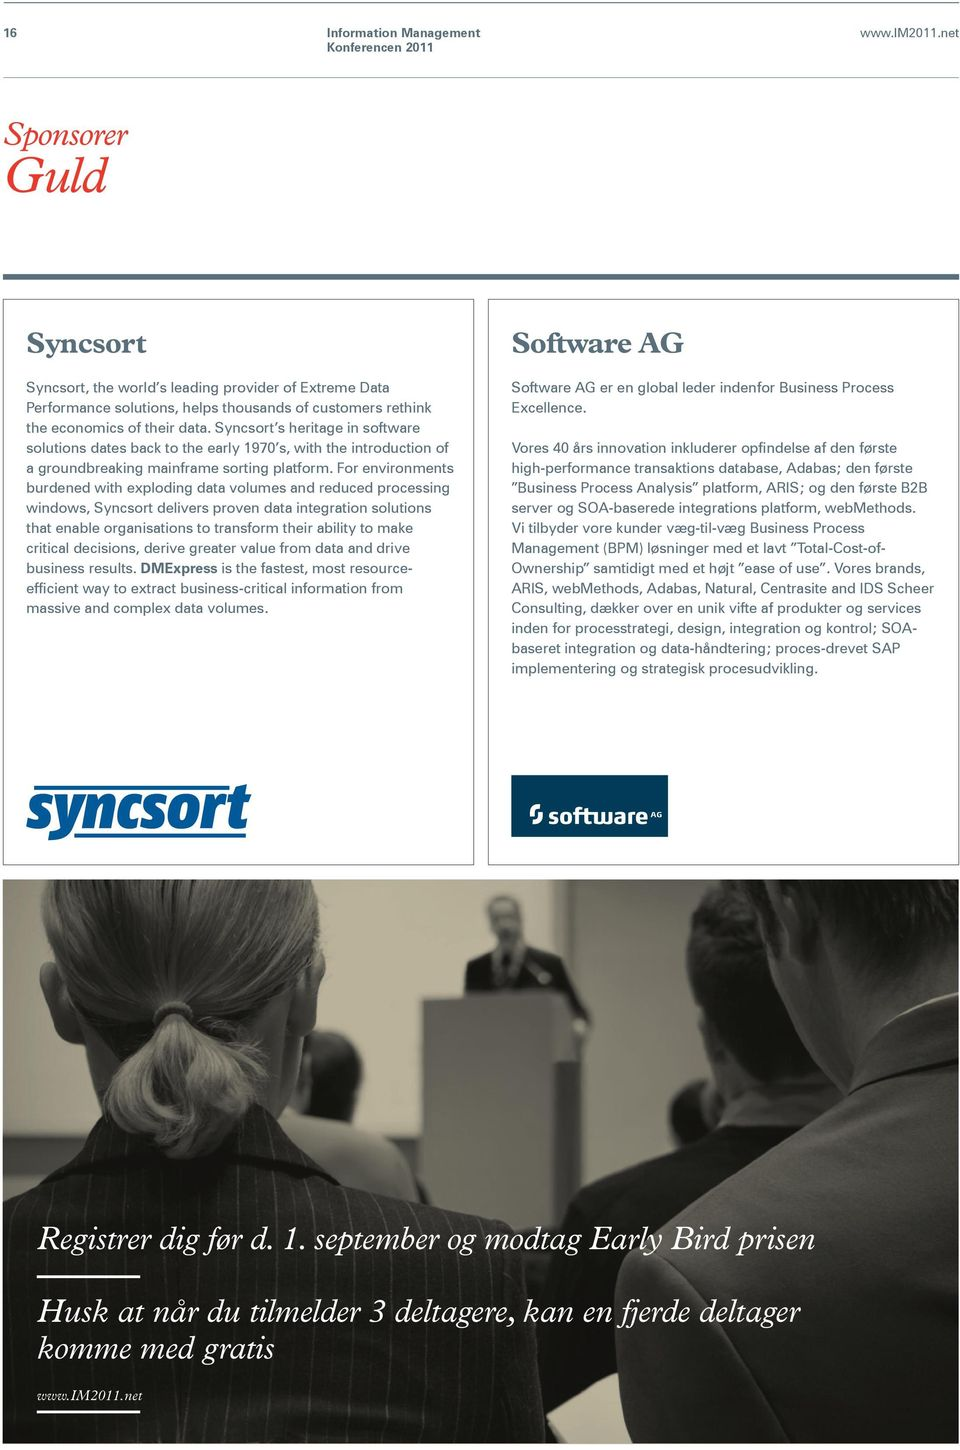 For environments burdened with exploding data volumes and reduced processing windows, Syncsort delivers proven data integration solutions that enable organisations to transform their ability to make